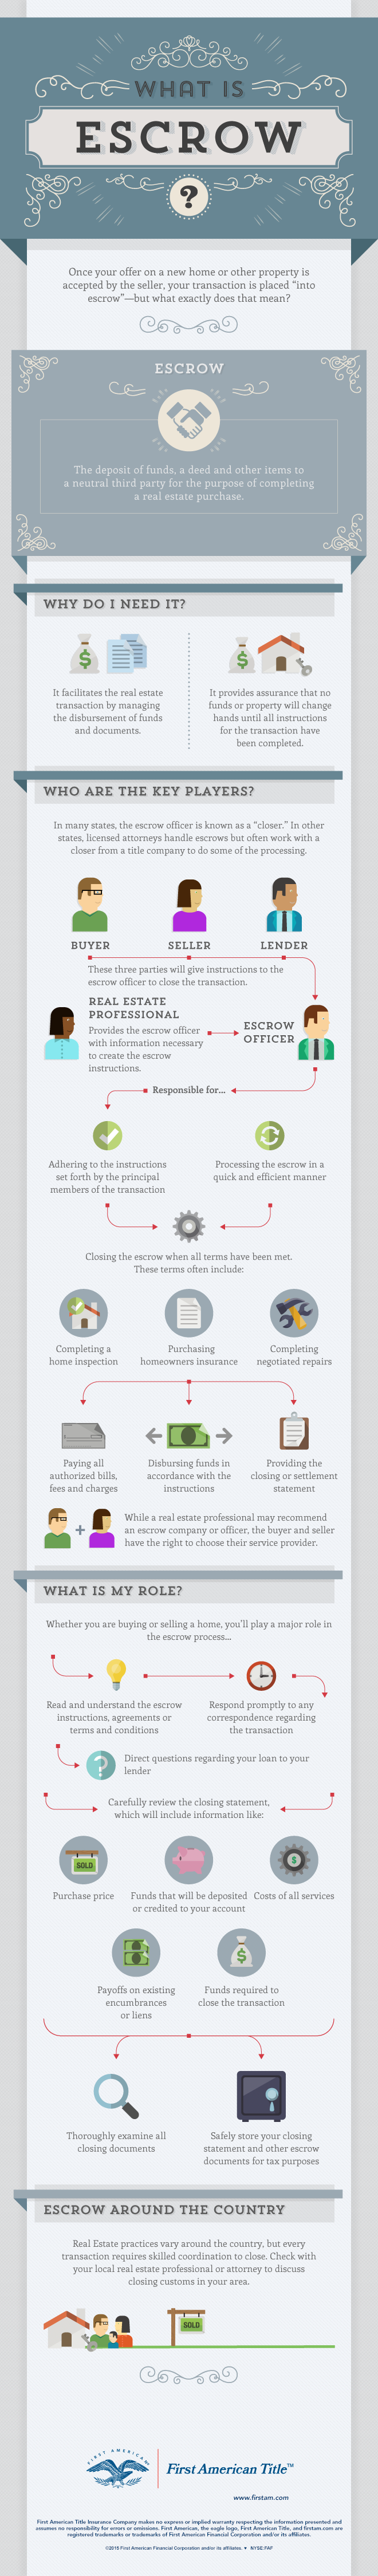 infog-what-is-escrow.png